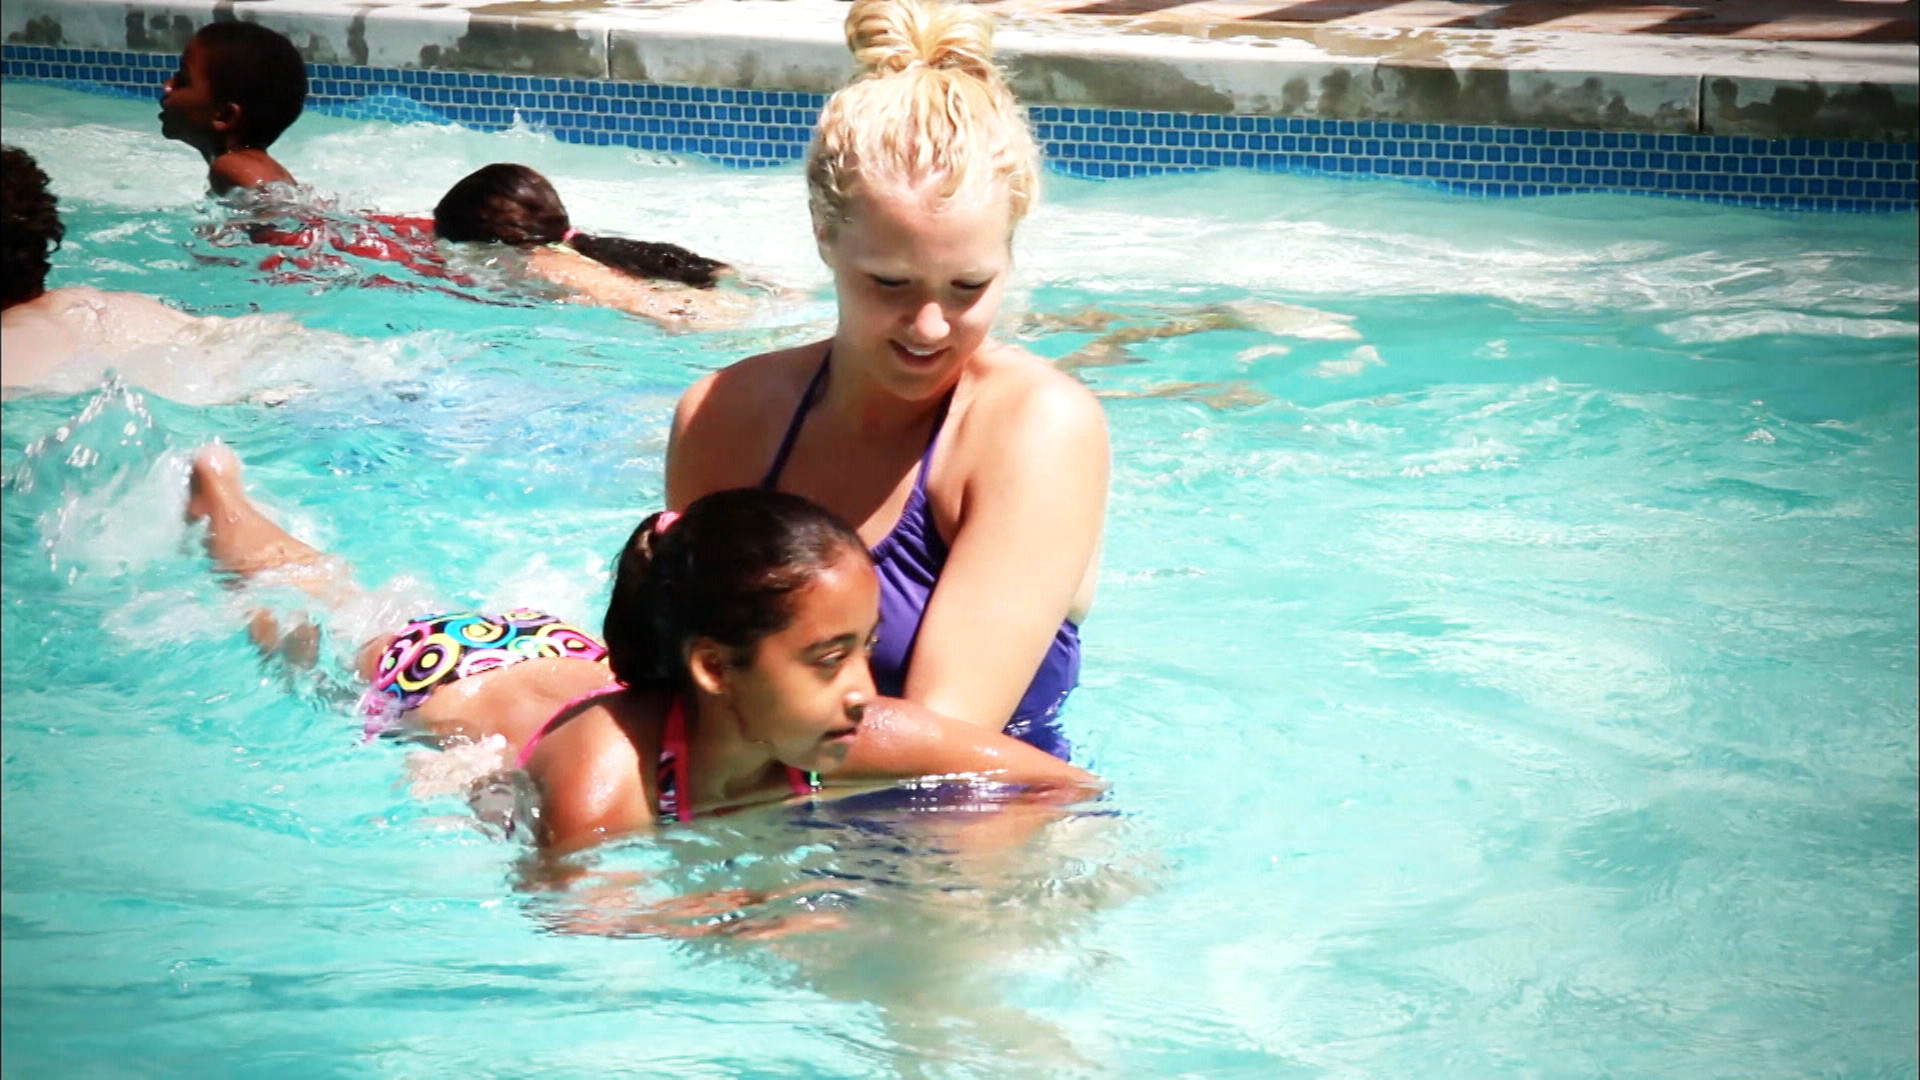 Whether you are taking the kids out to a community pool or using the pool  right in your backyard, it is important to have someone watching your kids.